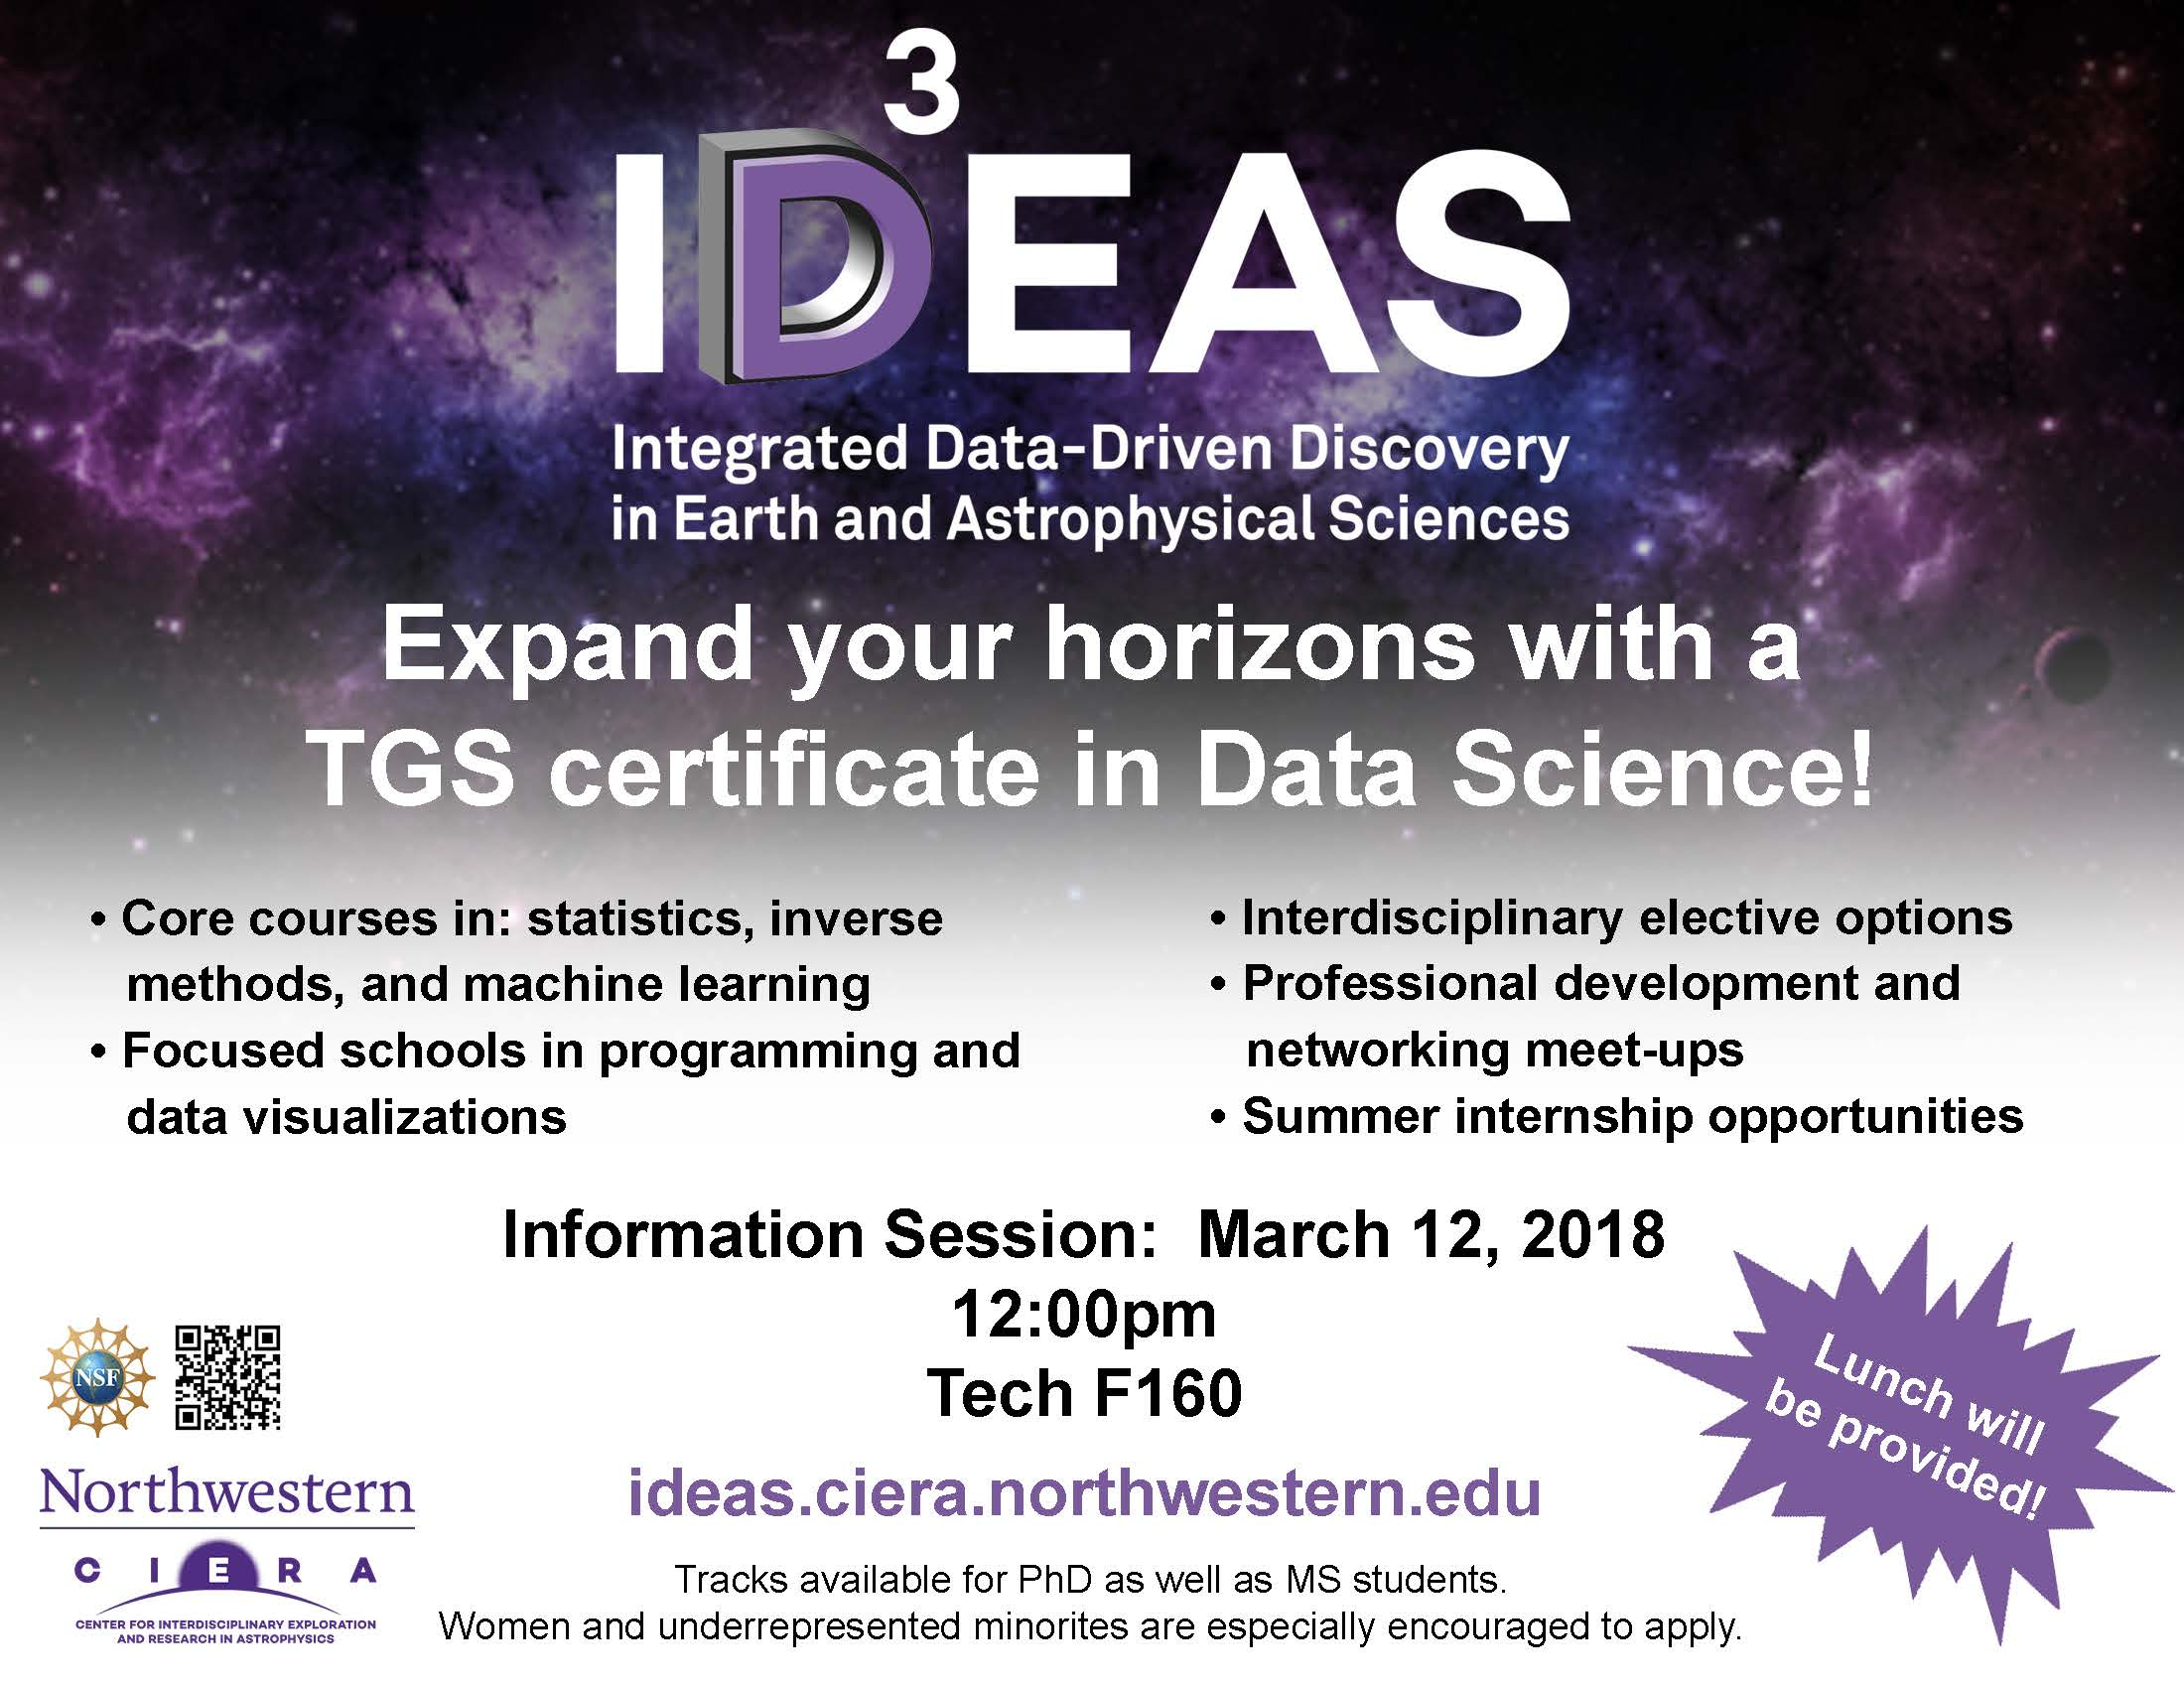 IDEAS Information Session for Potential 2018 Cohort Members to be Held 3/12/18